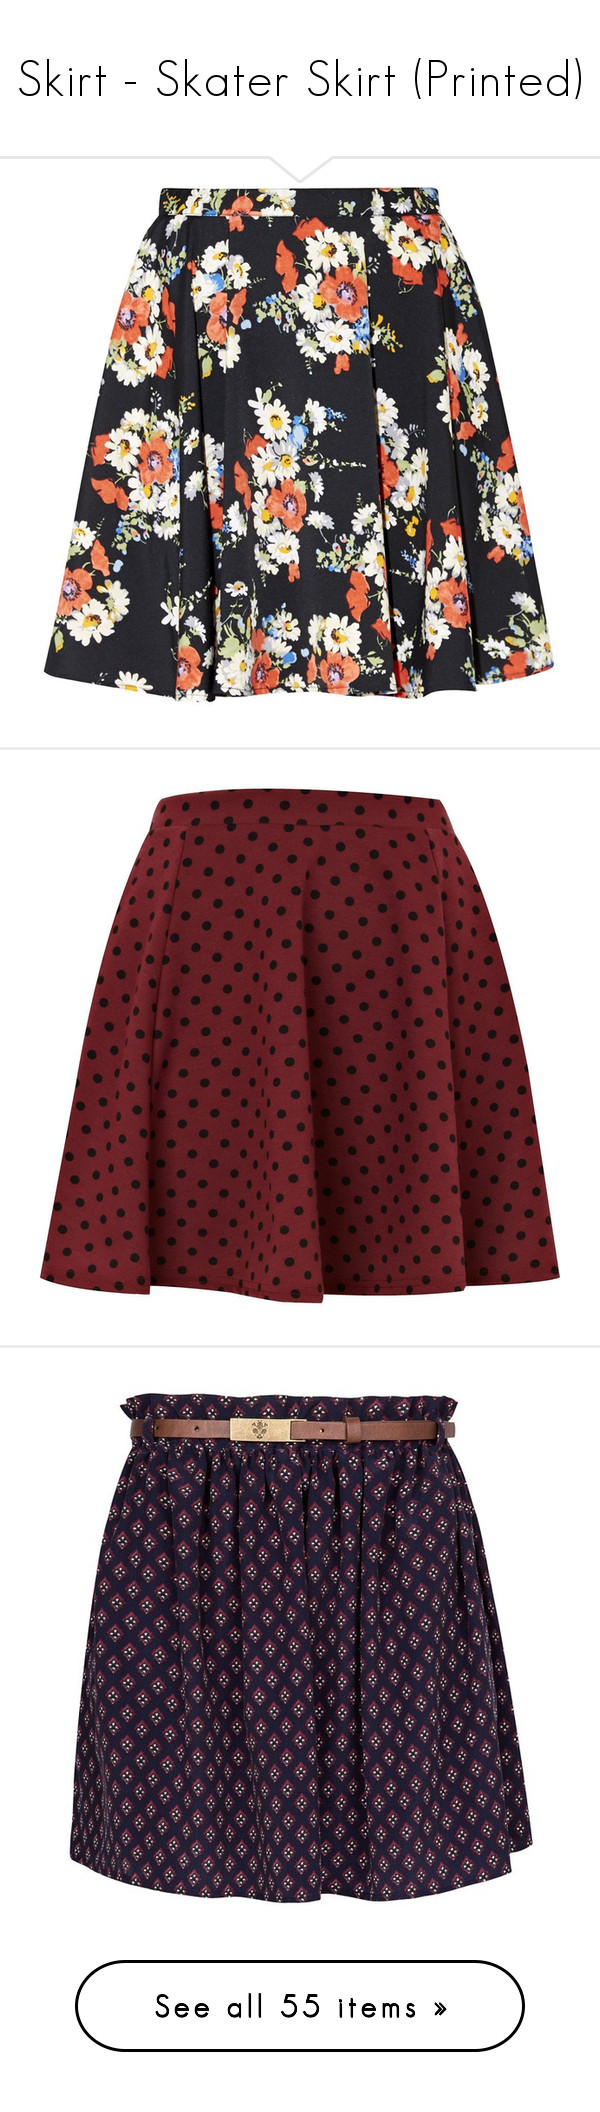 """Skirt - Skater Skirt (Printed)"" by giovanna1995 ❤ liked on Polyvore featuring skirts, bottoms, petite, floral print skirt, floral printed skirt, floral print skater skirt, floral knee length skirt, crop skirt, saias and faldas"